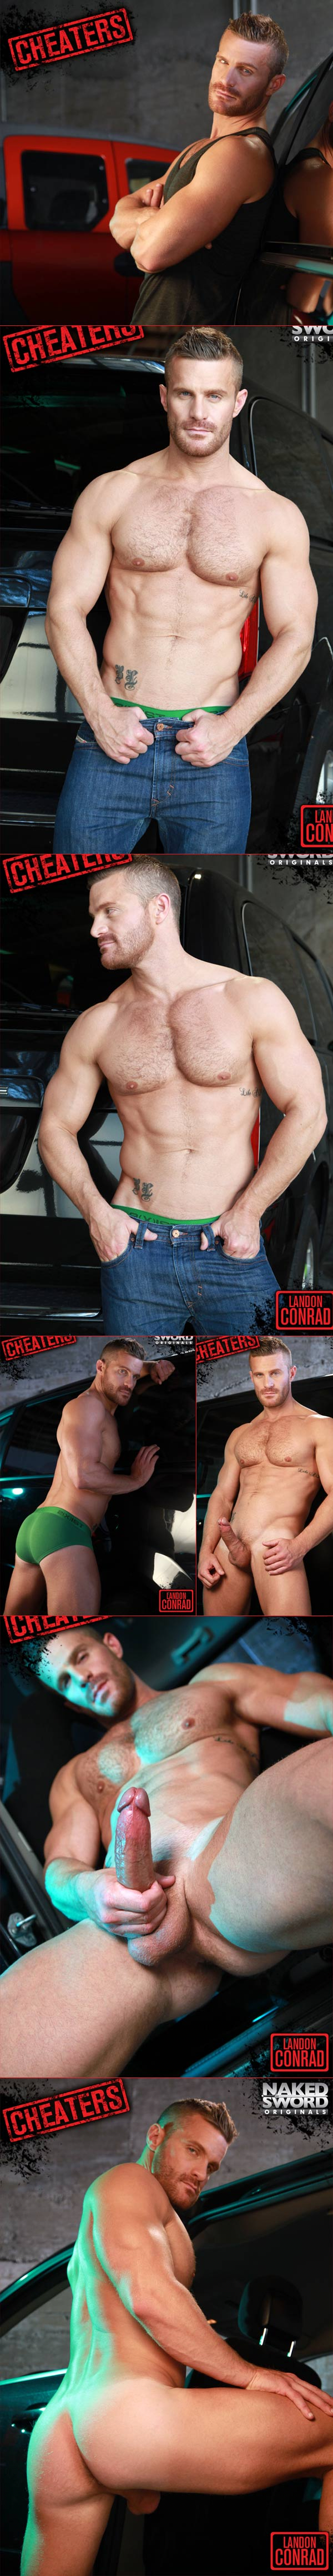 Cheaters Episode 4: Payback's A Bitch (Angel Rock & Landon Conrad) at NakedSword